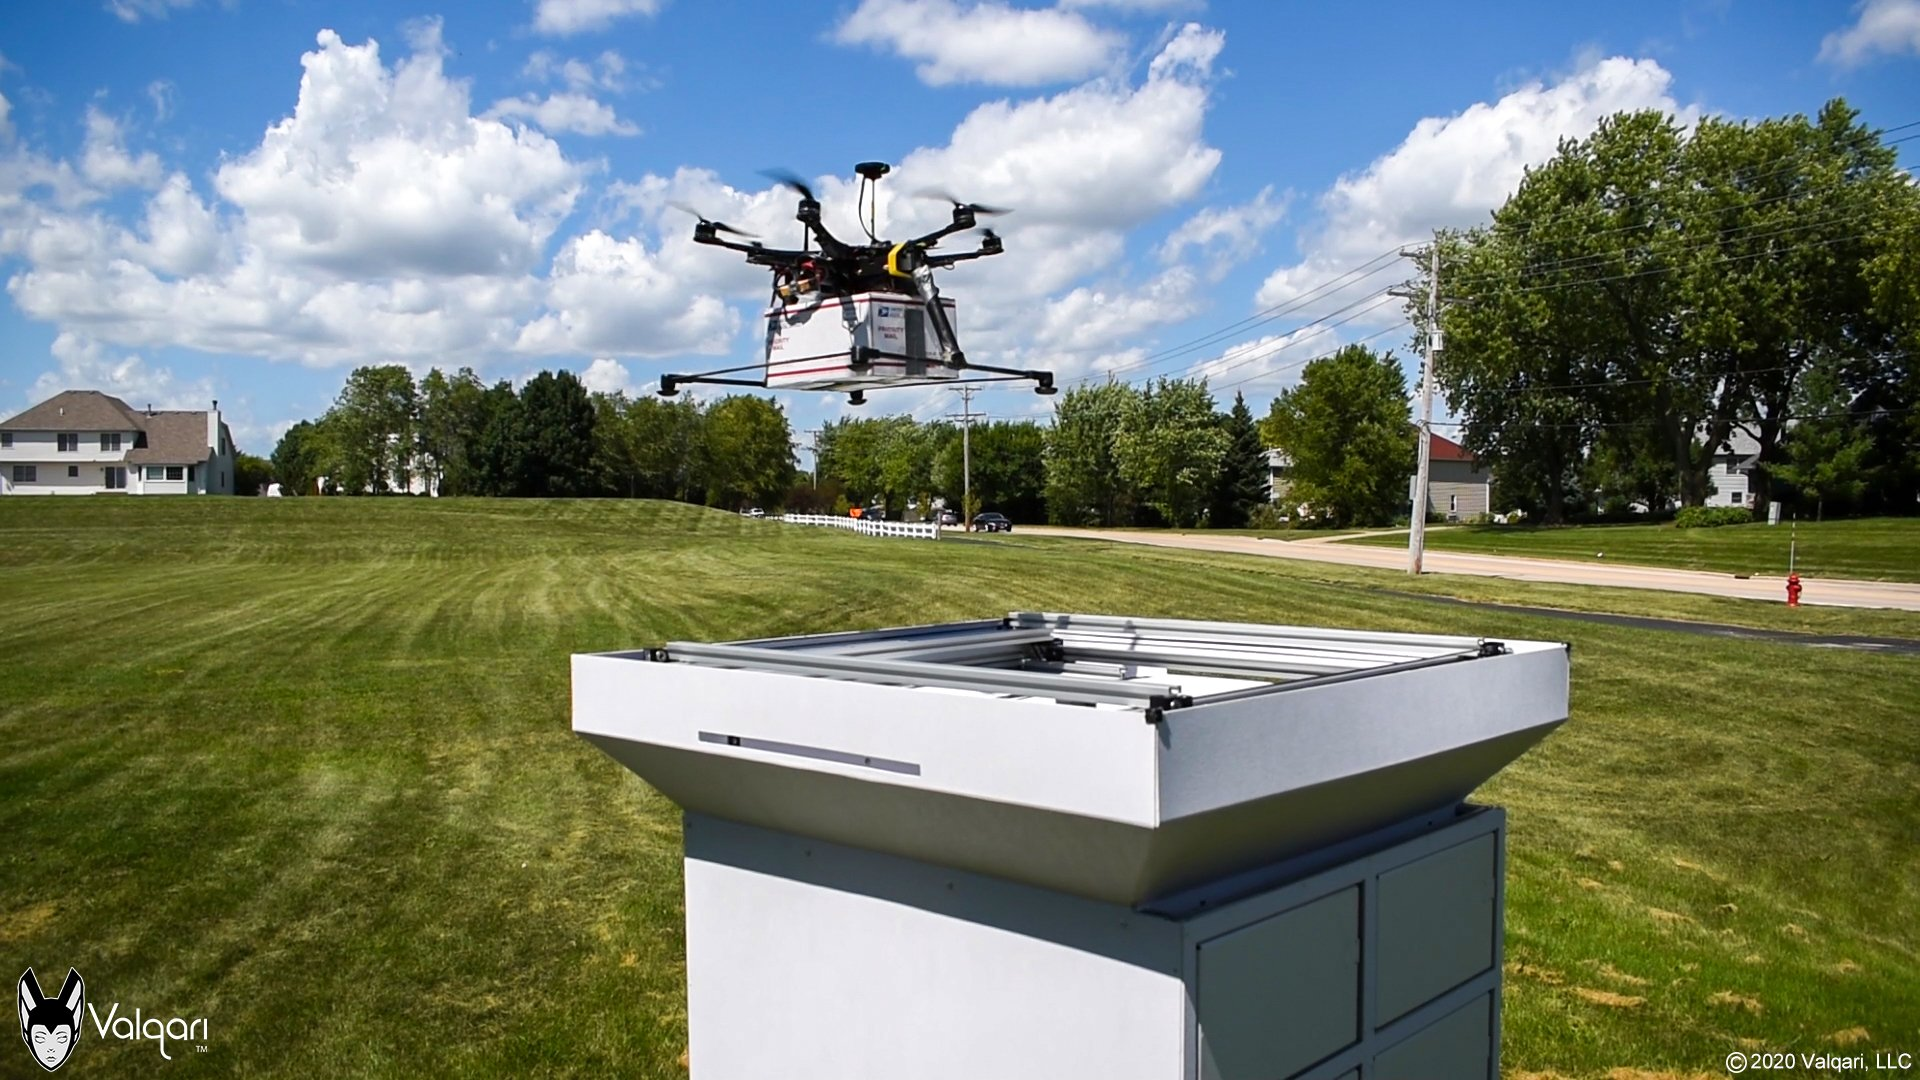 Drone Startup Addresses Last-Inch Logistics with Drone Delivery Station